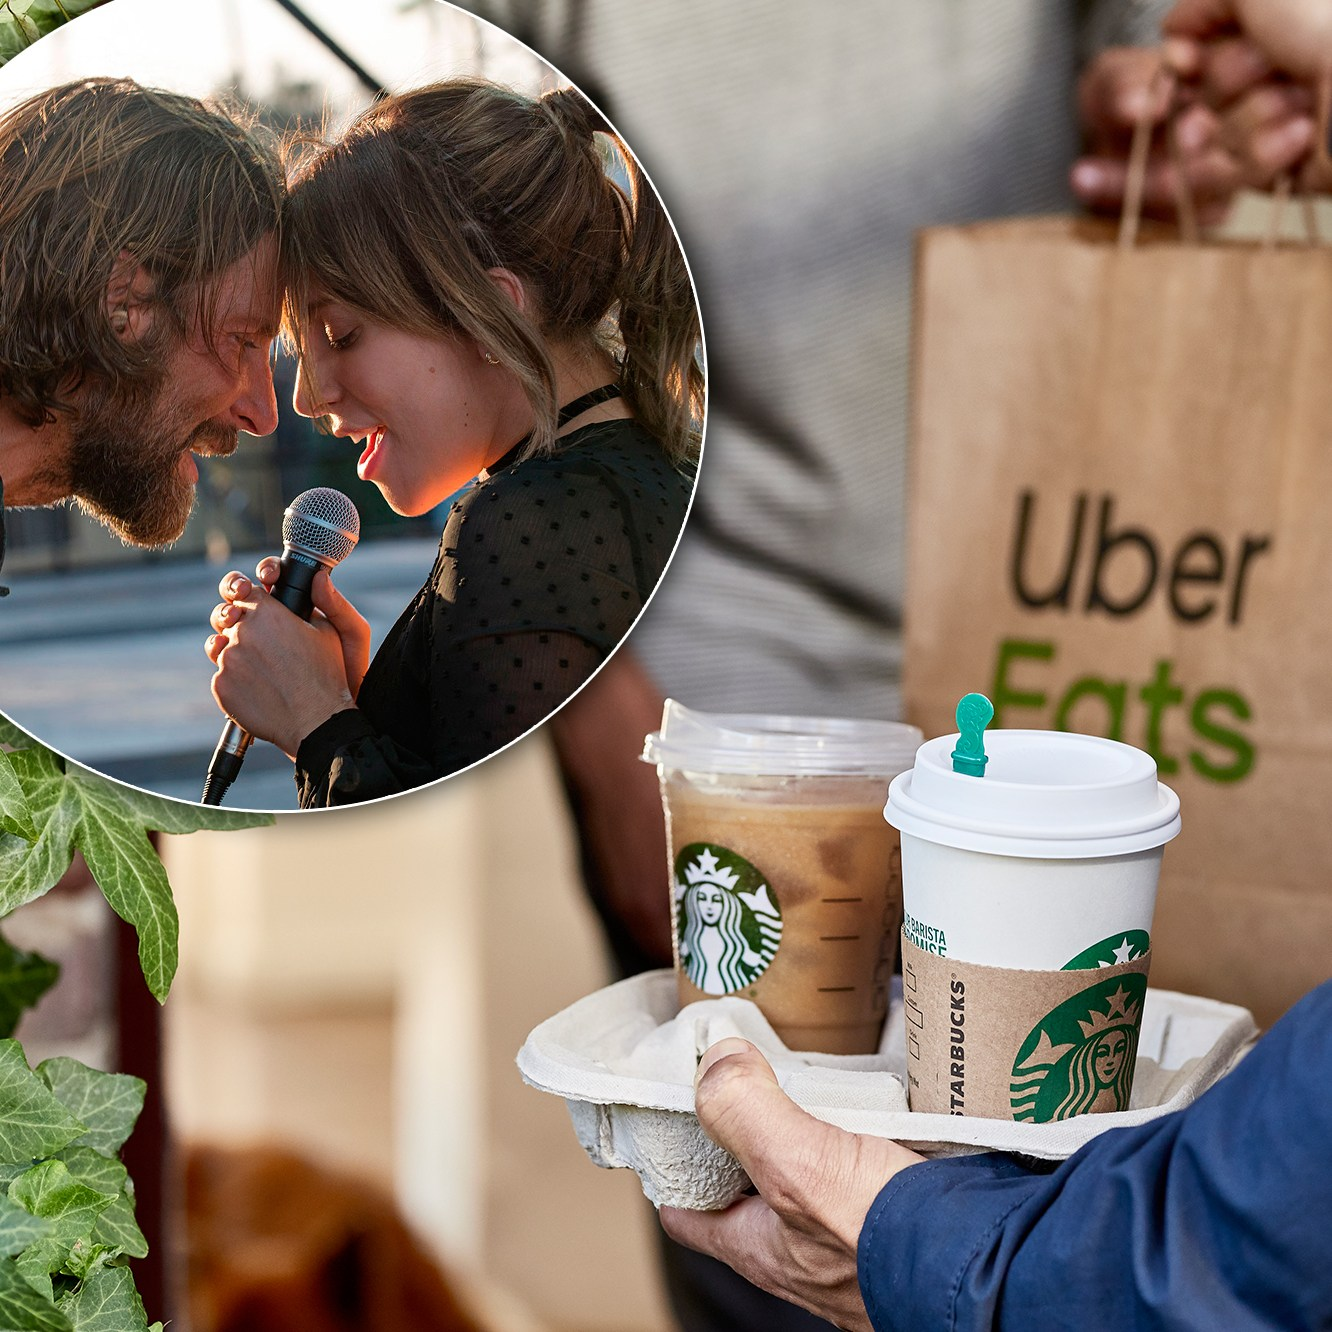 Uber Eats Reveals Menu of Oscar Nominee-Inspired Dishes: Sushi Rolls, a Caviar Flight and More